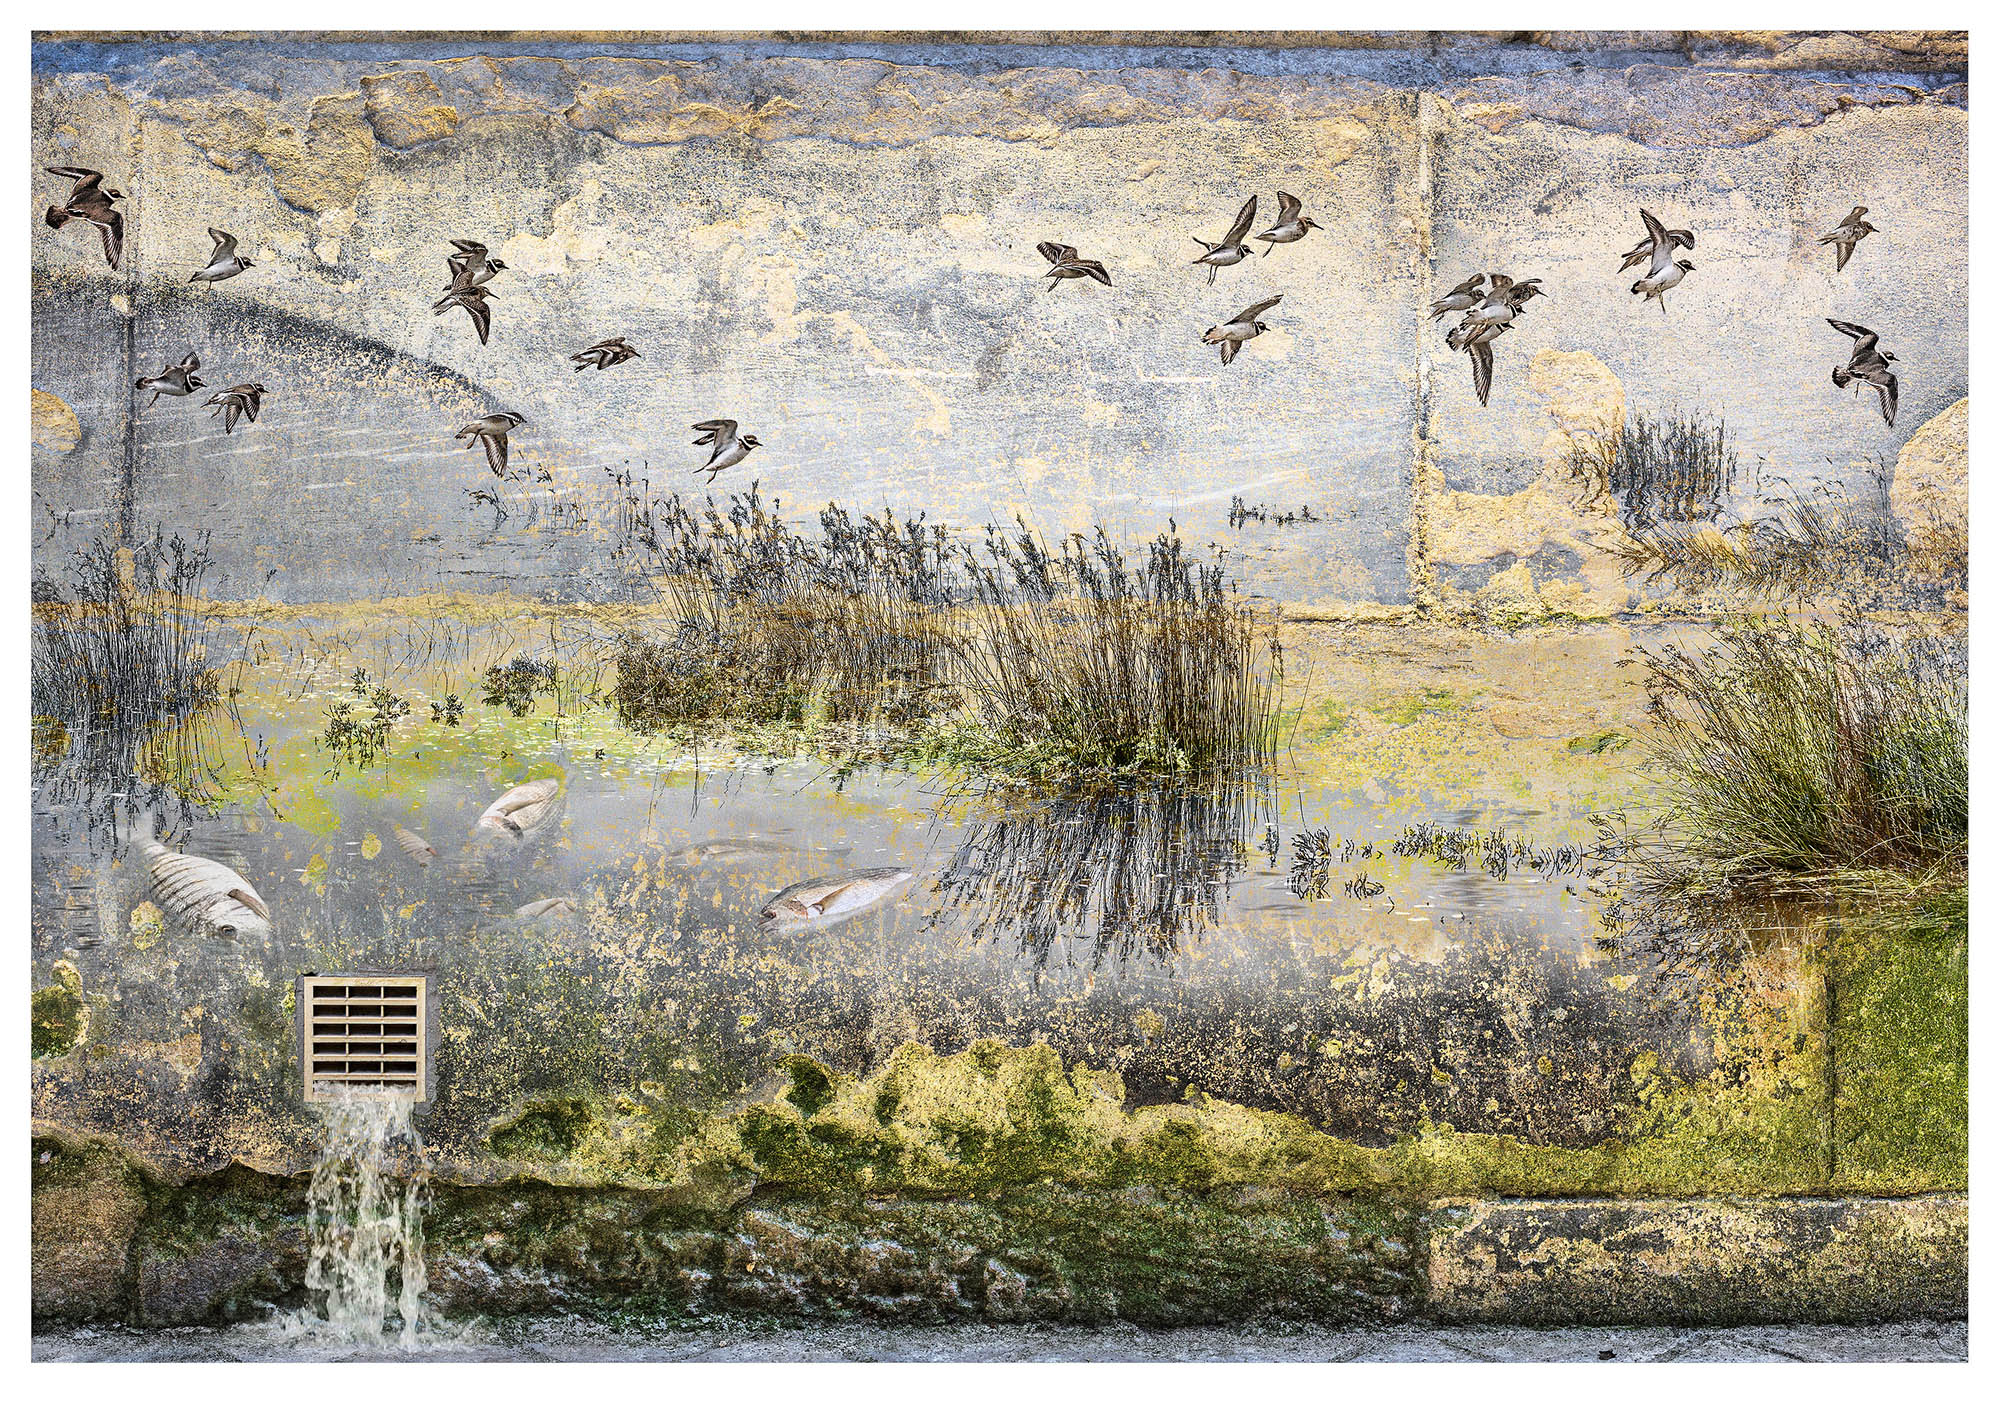 No. 7: A river landscape scene overlaid on textured wall. The river has floating dead fish while overhead birds fly away